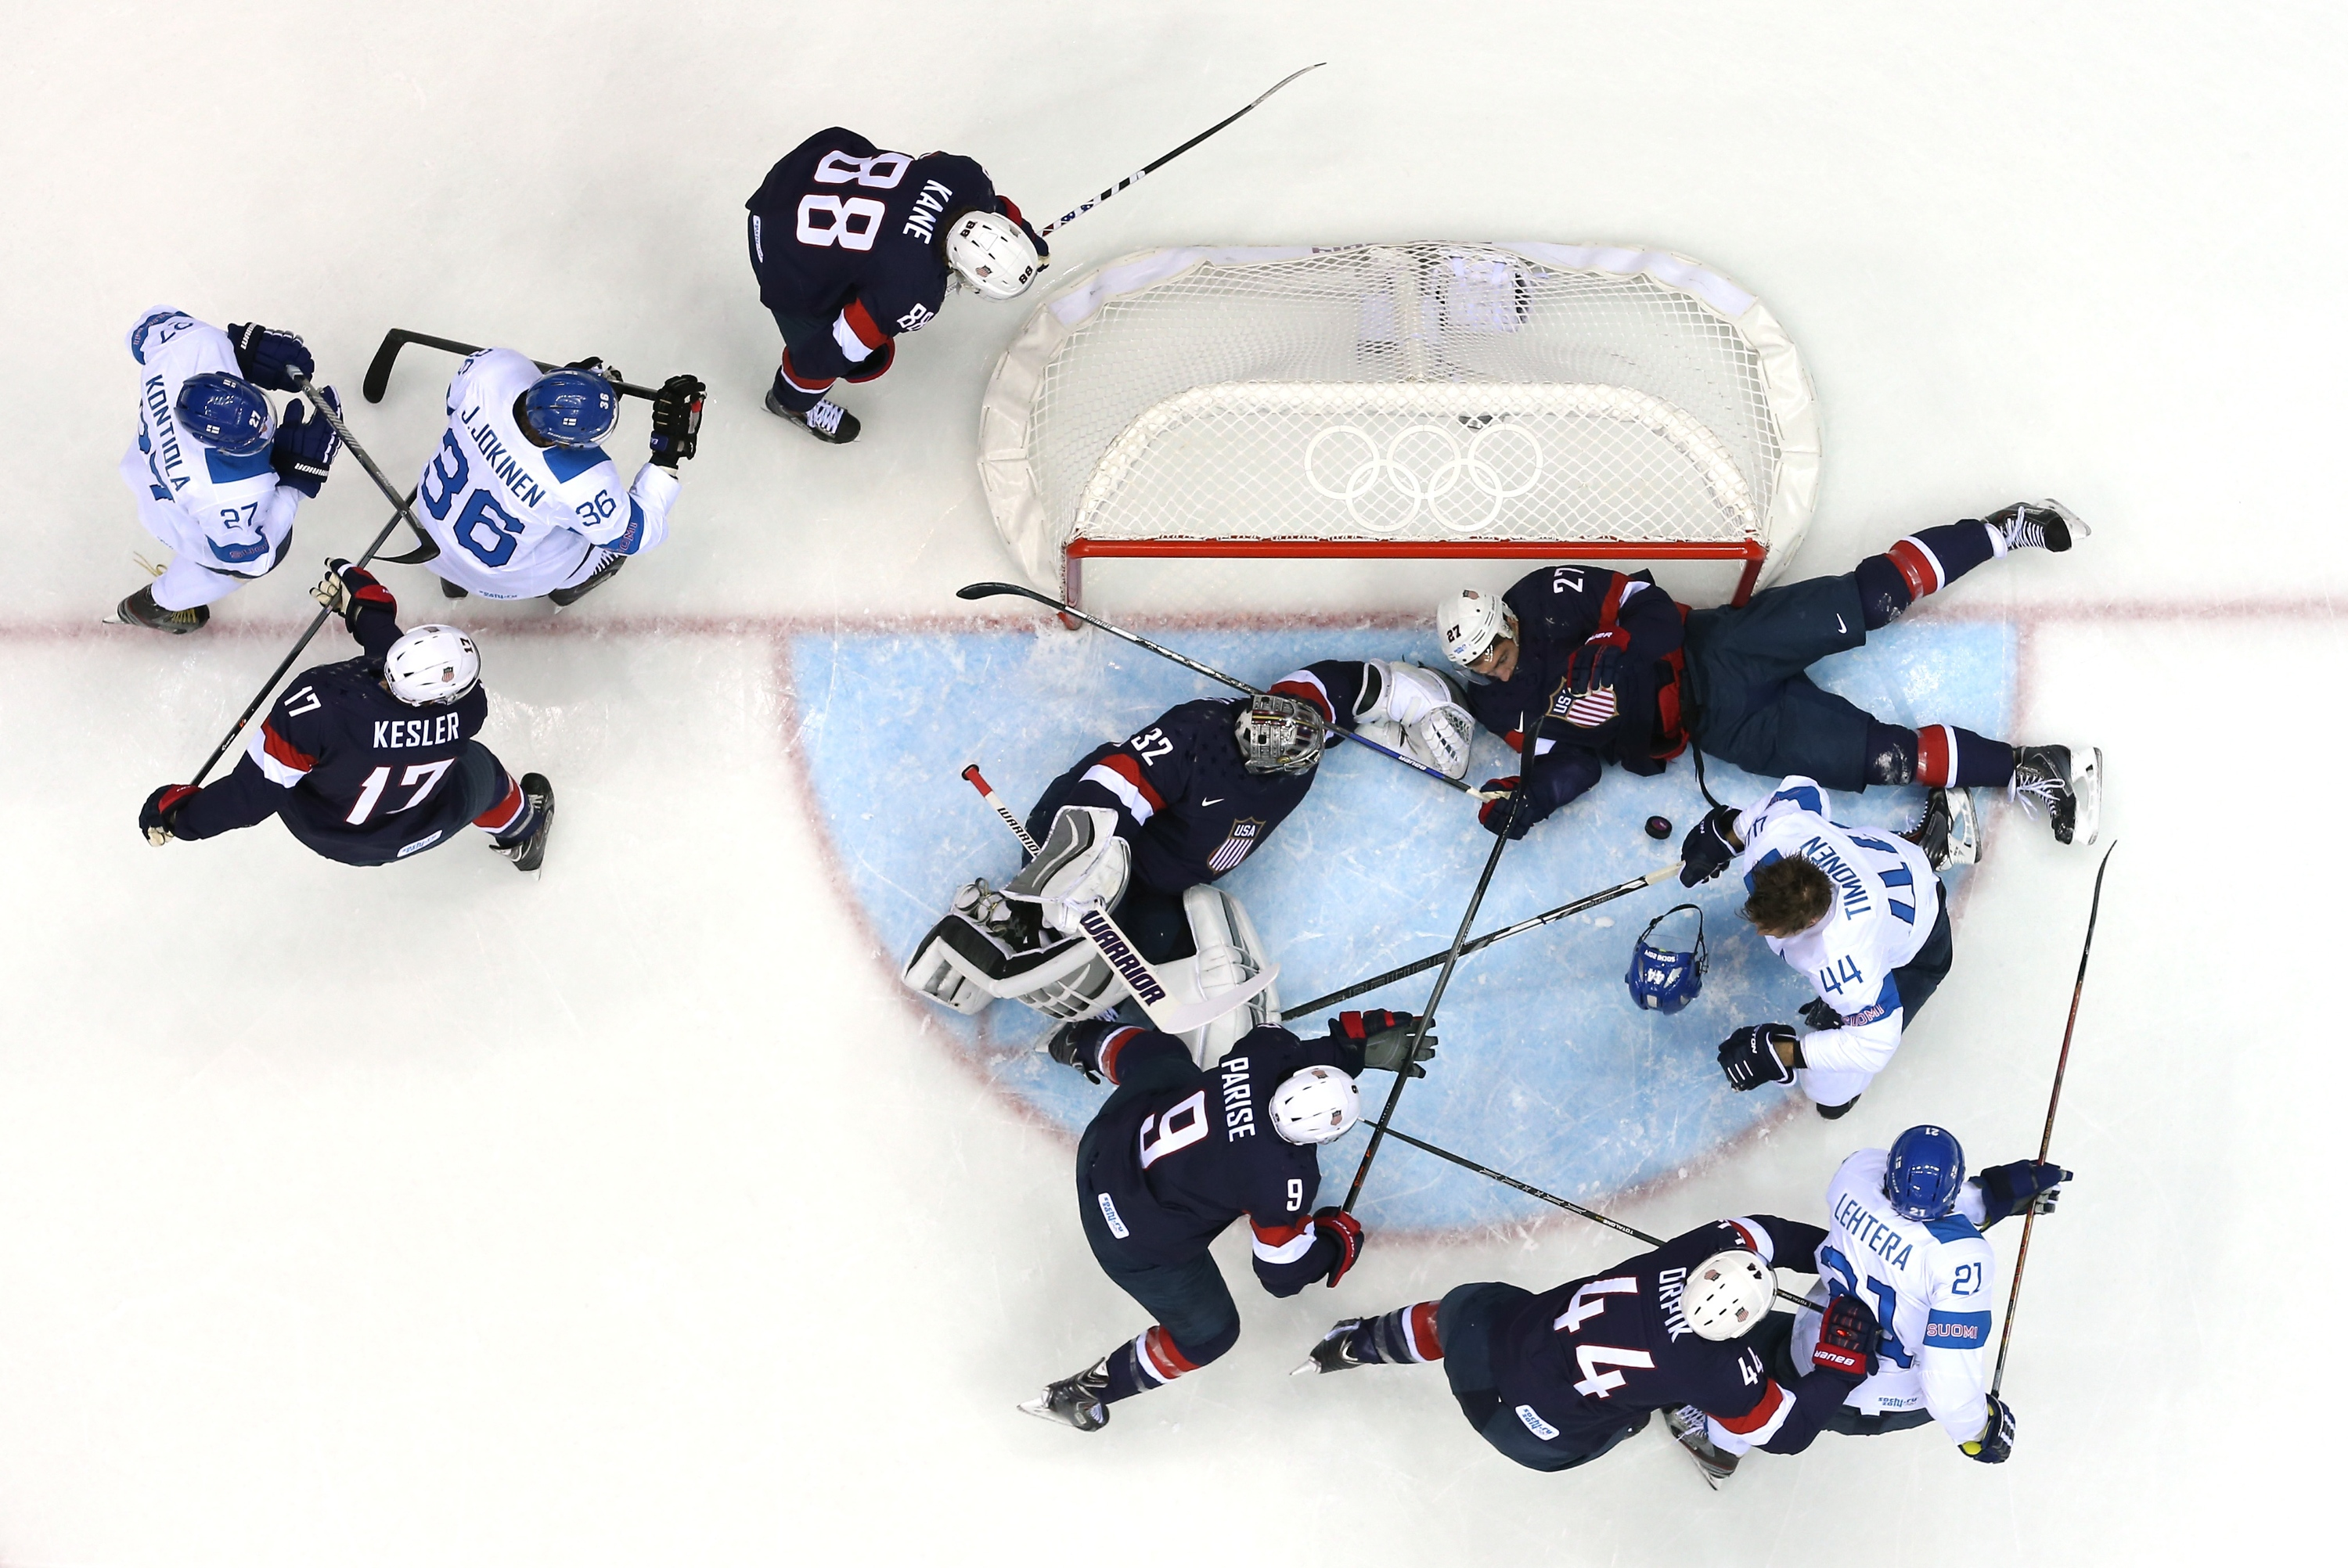 Sochi Olympics Day 17: Finland takes bronze after 5-0 win over USA men's hockey team